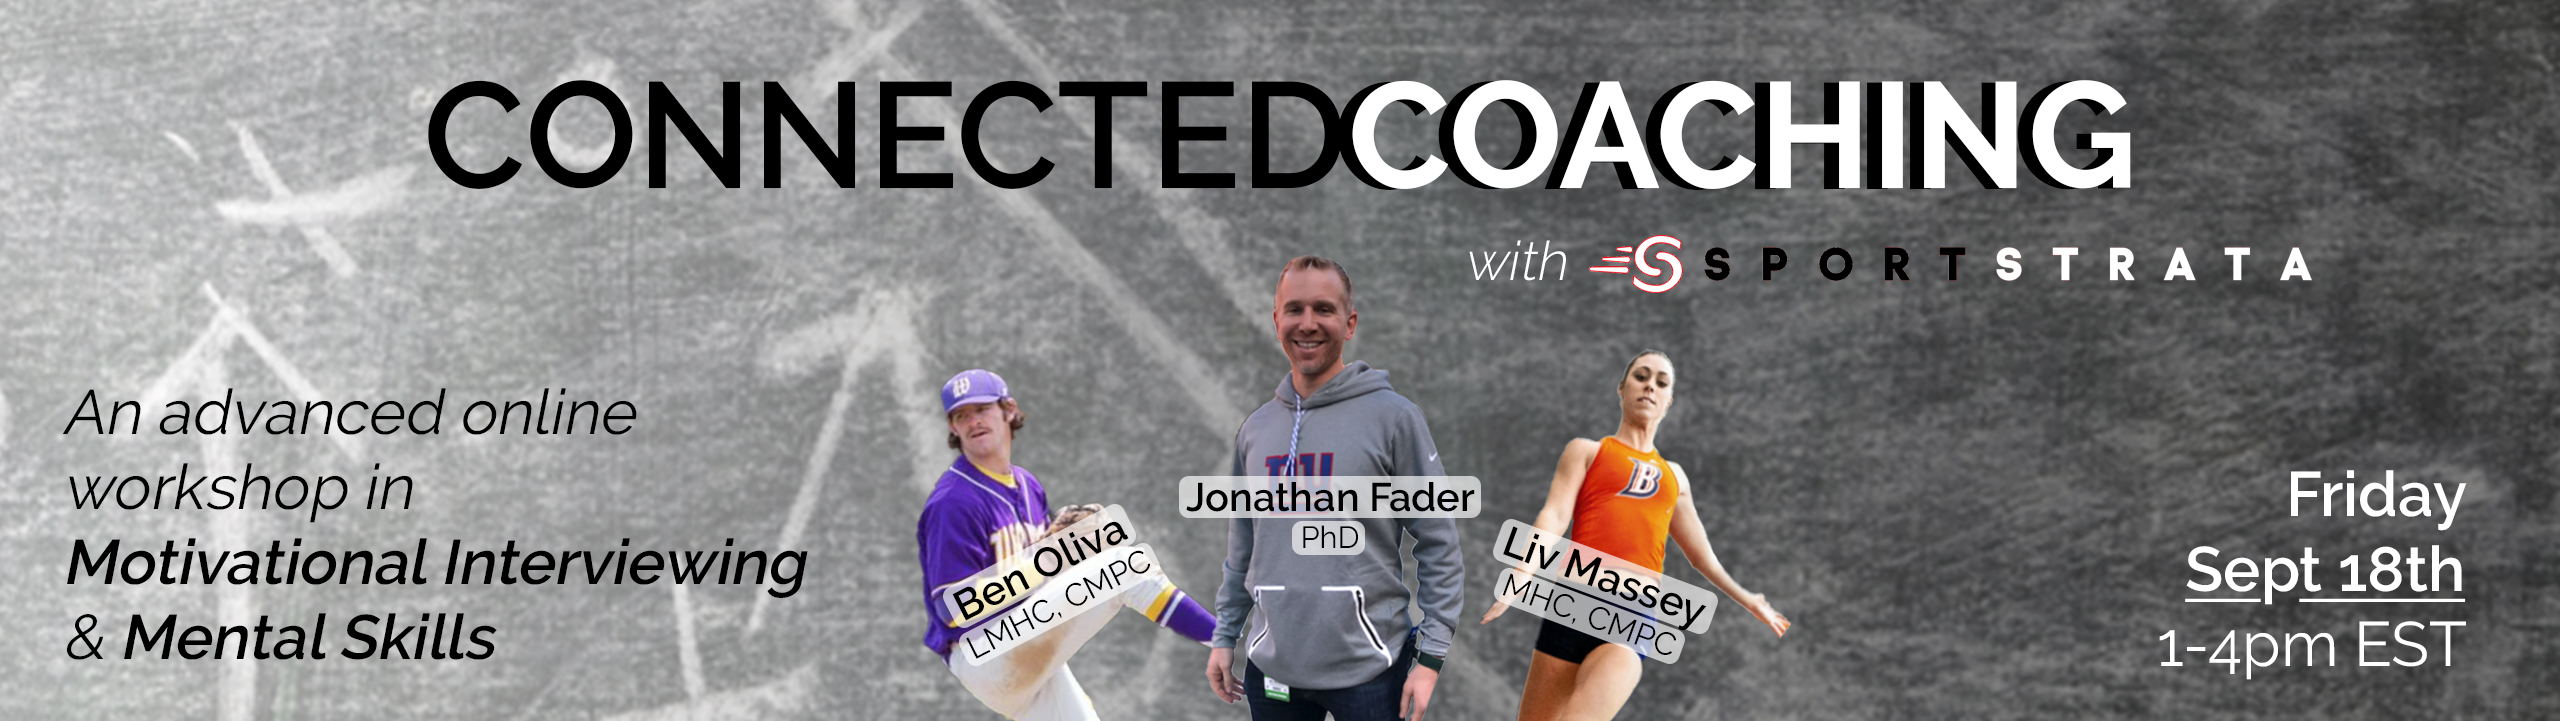 Advanced Connected Coaching_banner alt